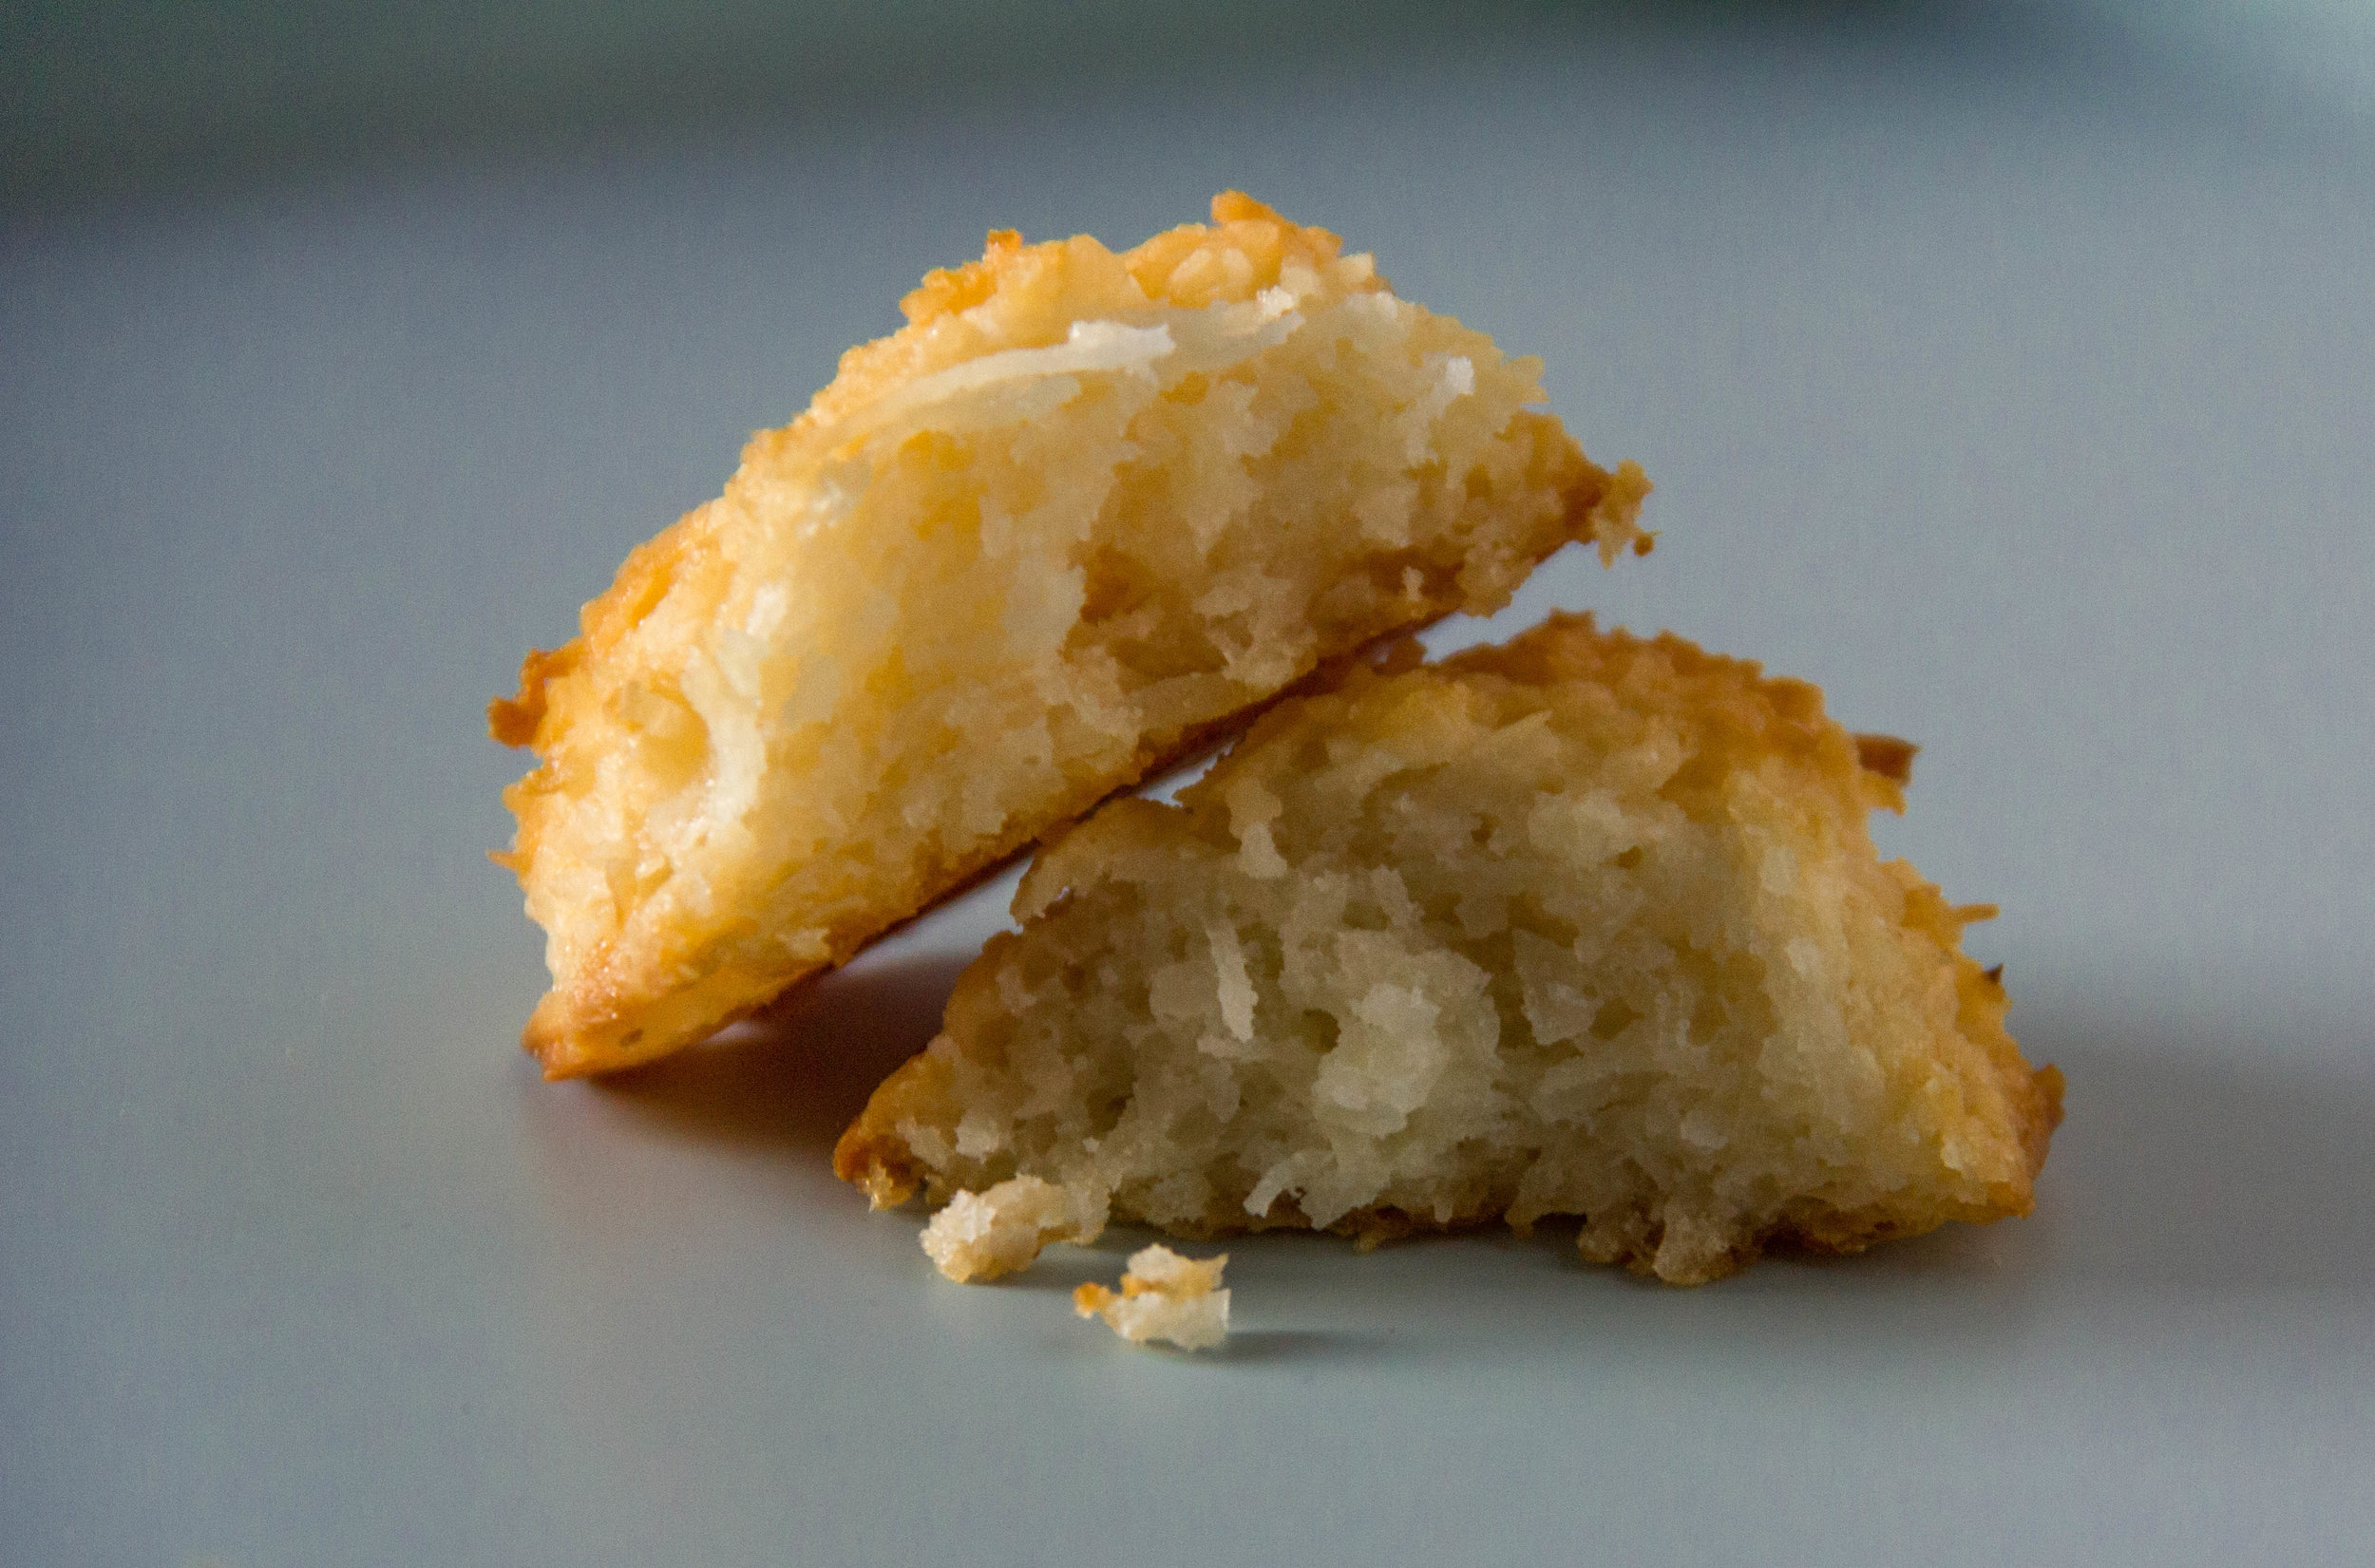 gooey and sweet on the inside, salty and crunchy on the outside... Salted Caramel Coconut Macaroons